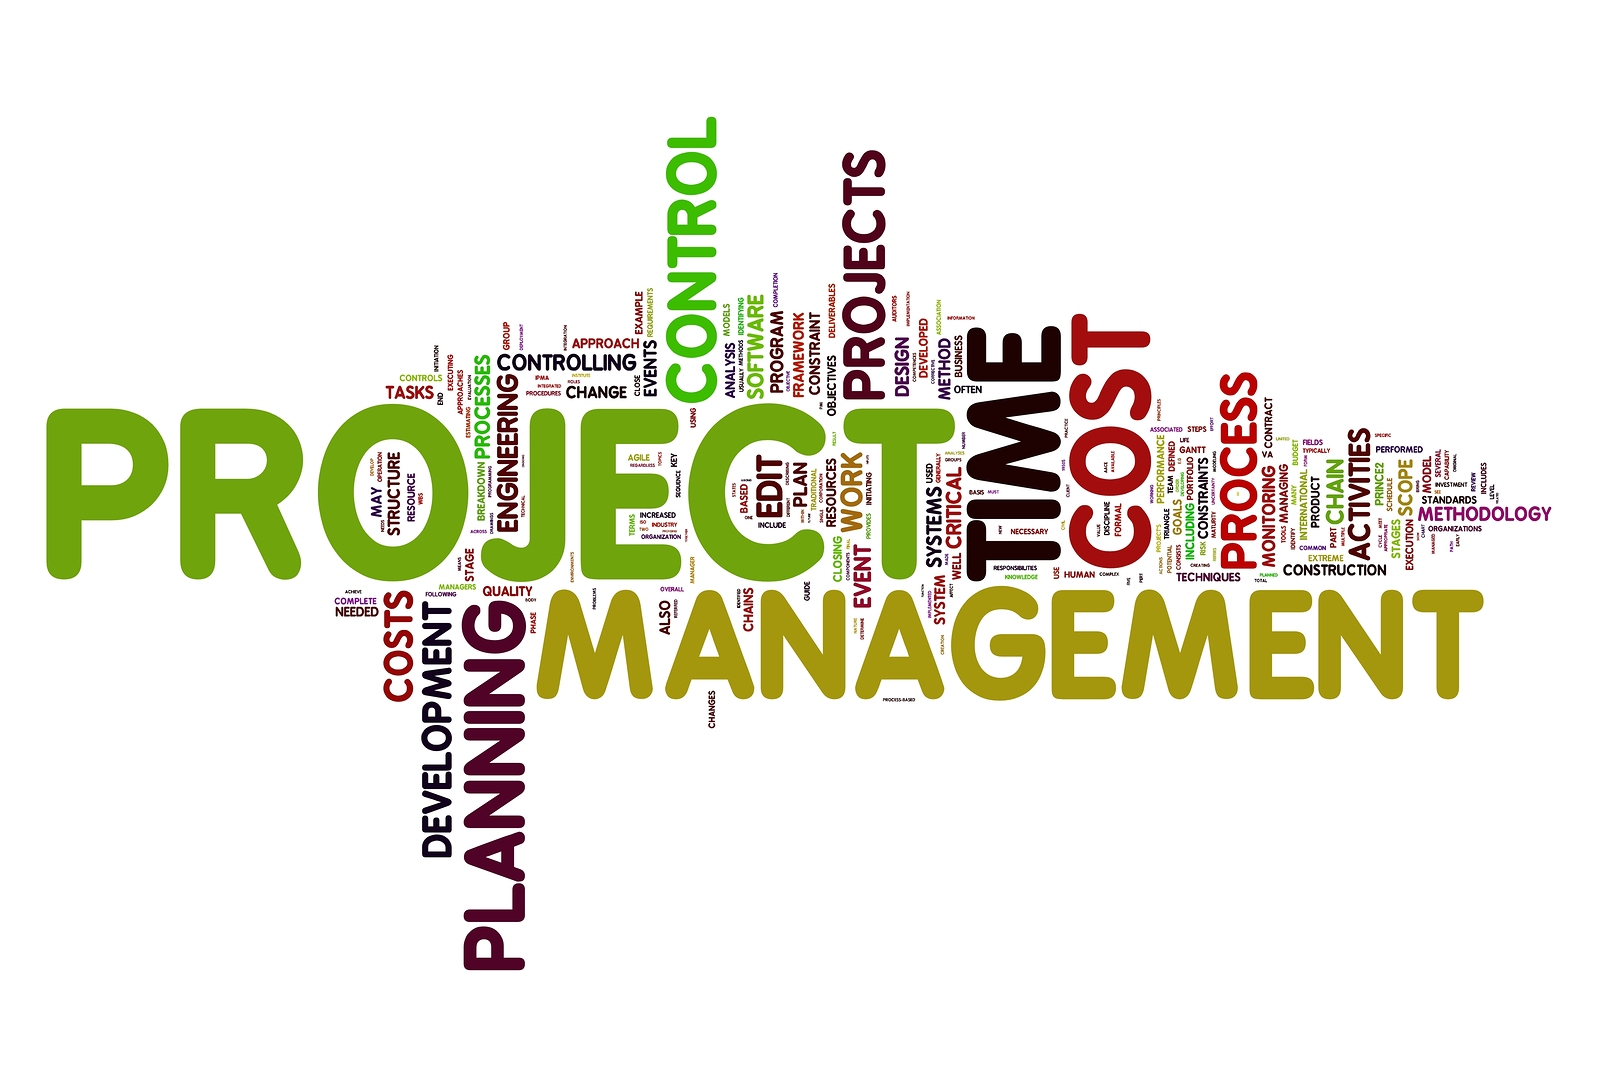 Project Management Services - Specto Management Solutions